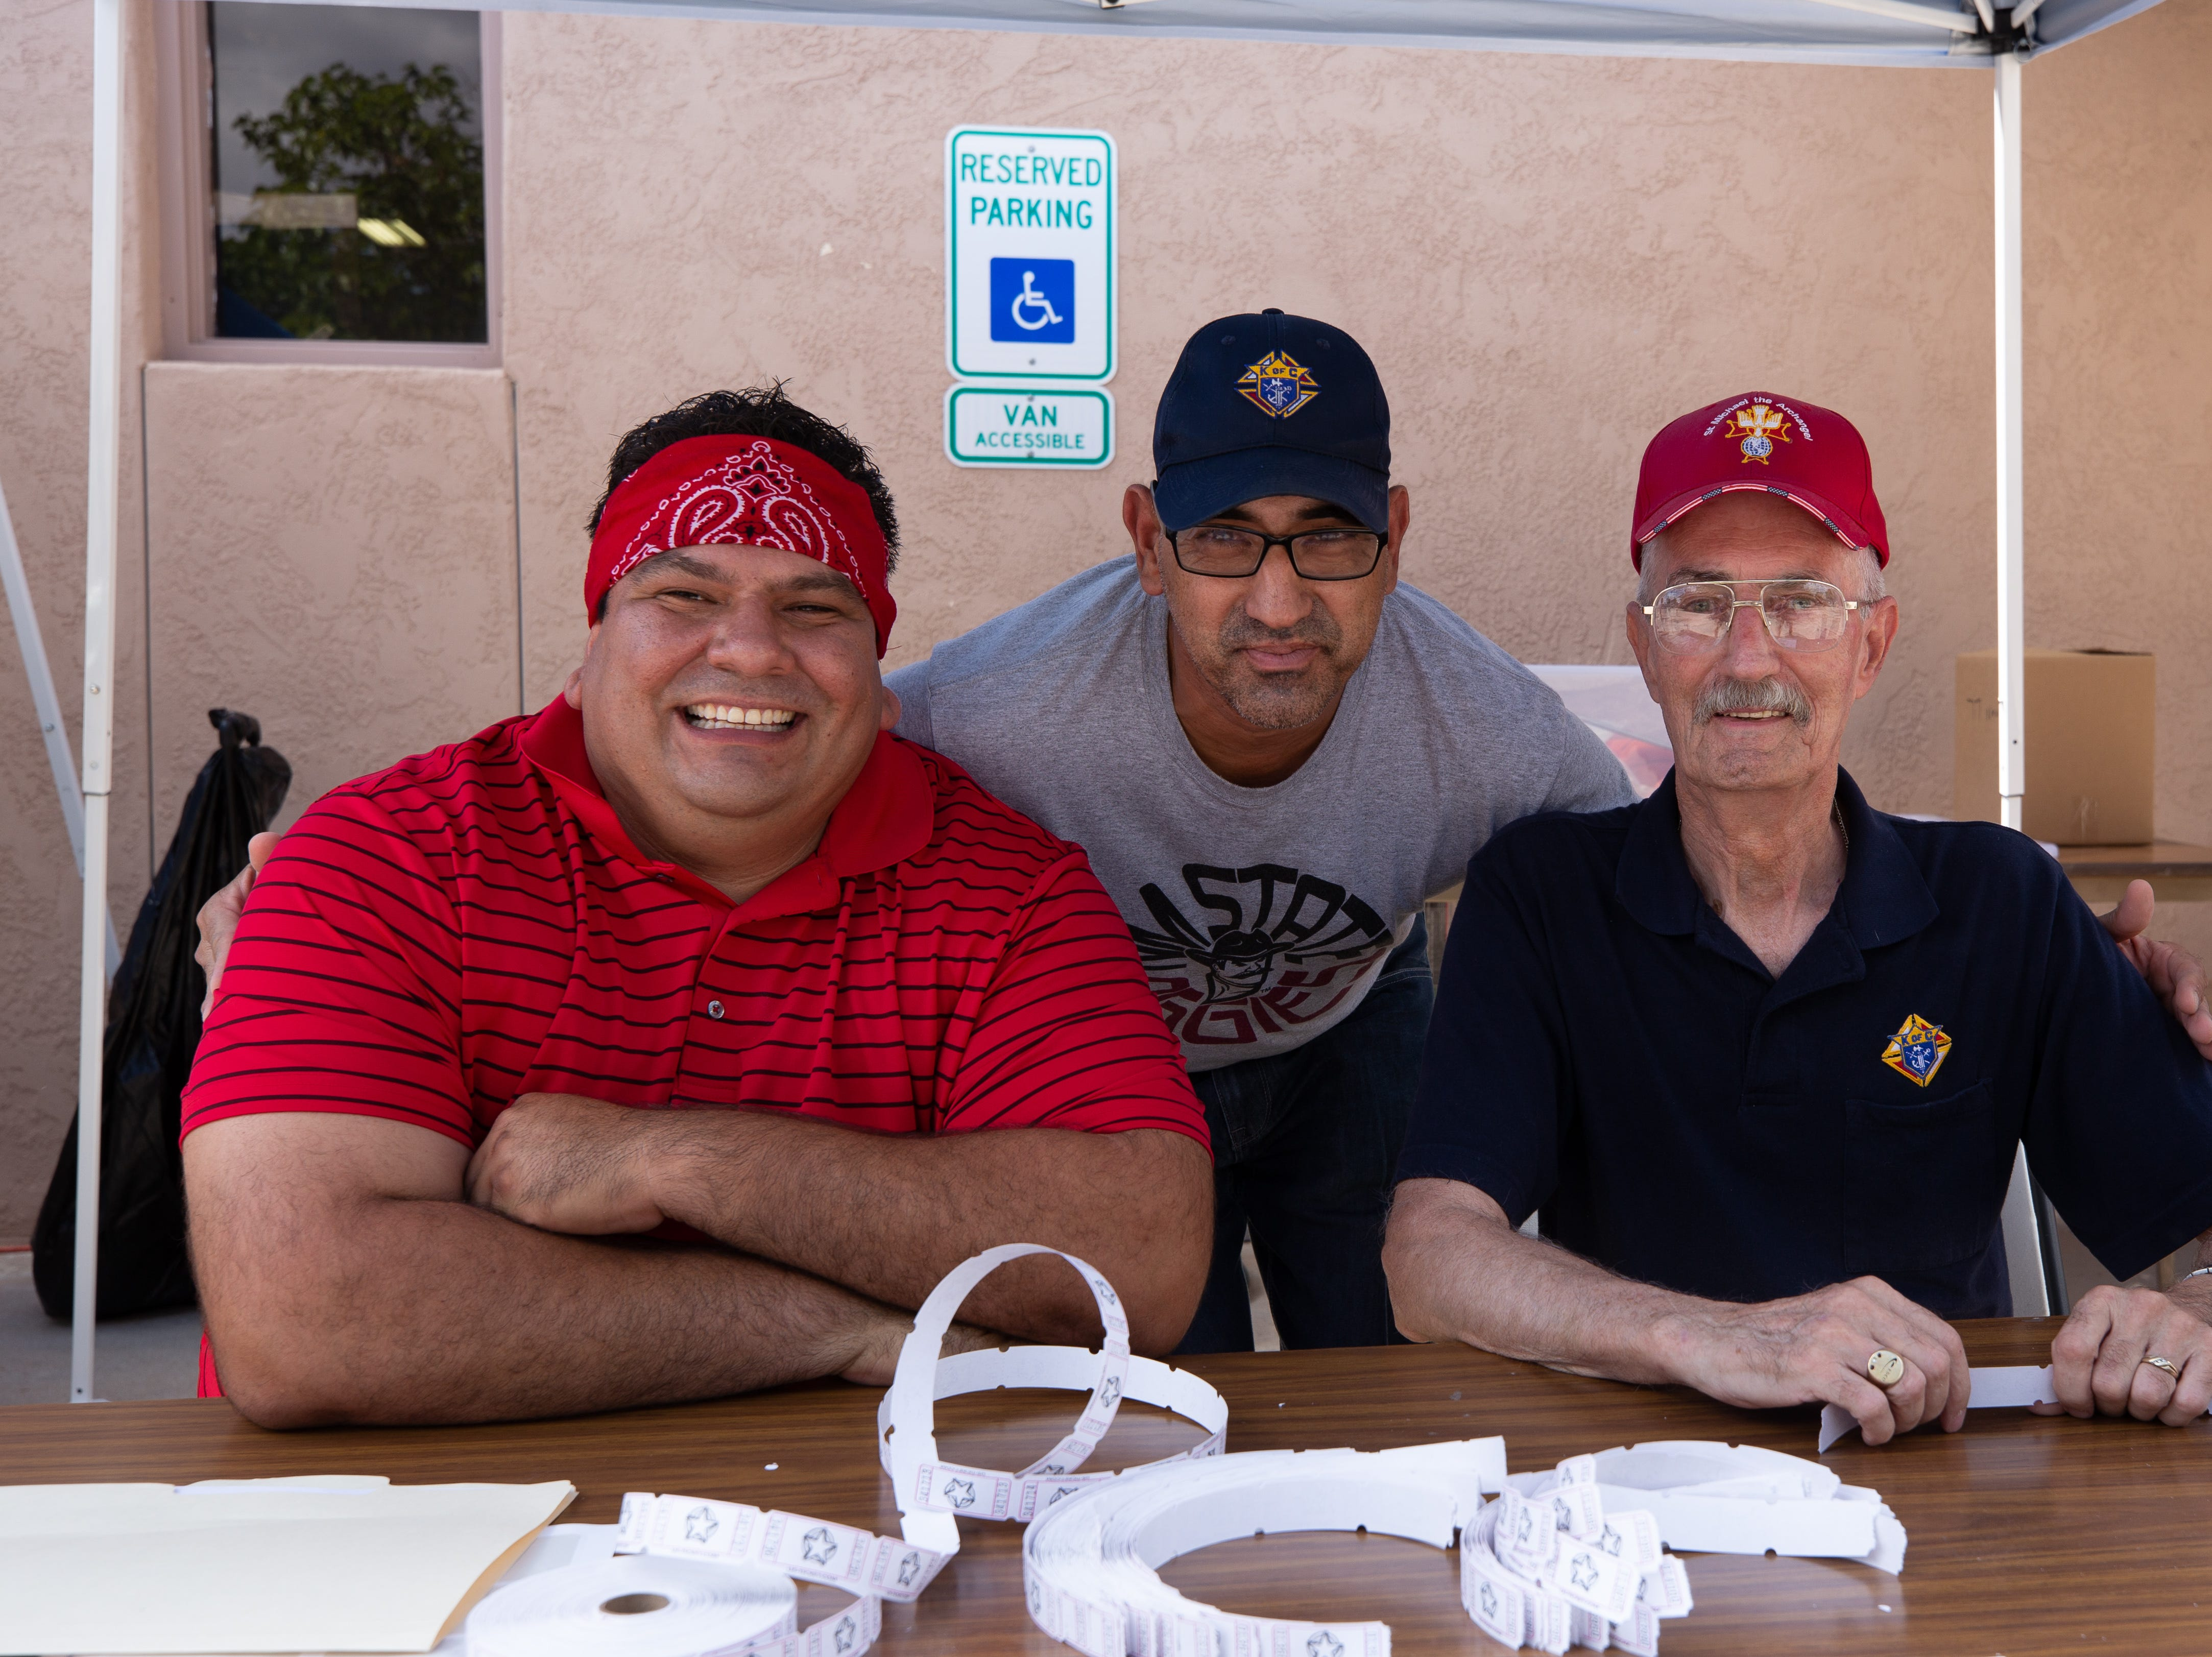 Knights of Columbus Council 13969 members, from left, Joaquin Silva, Alberto Grijalva and Kerri Morley, sell game tickets at the St. Genevieve Fiesta on Saturday, Sept. 8, 2018.